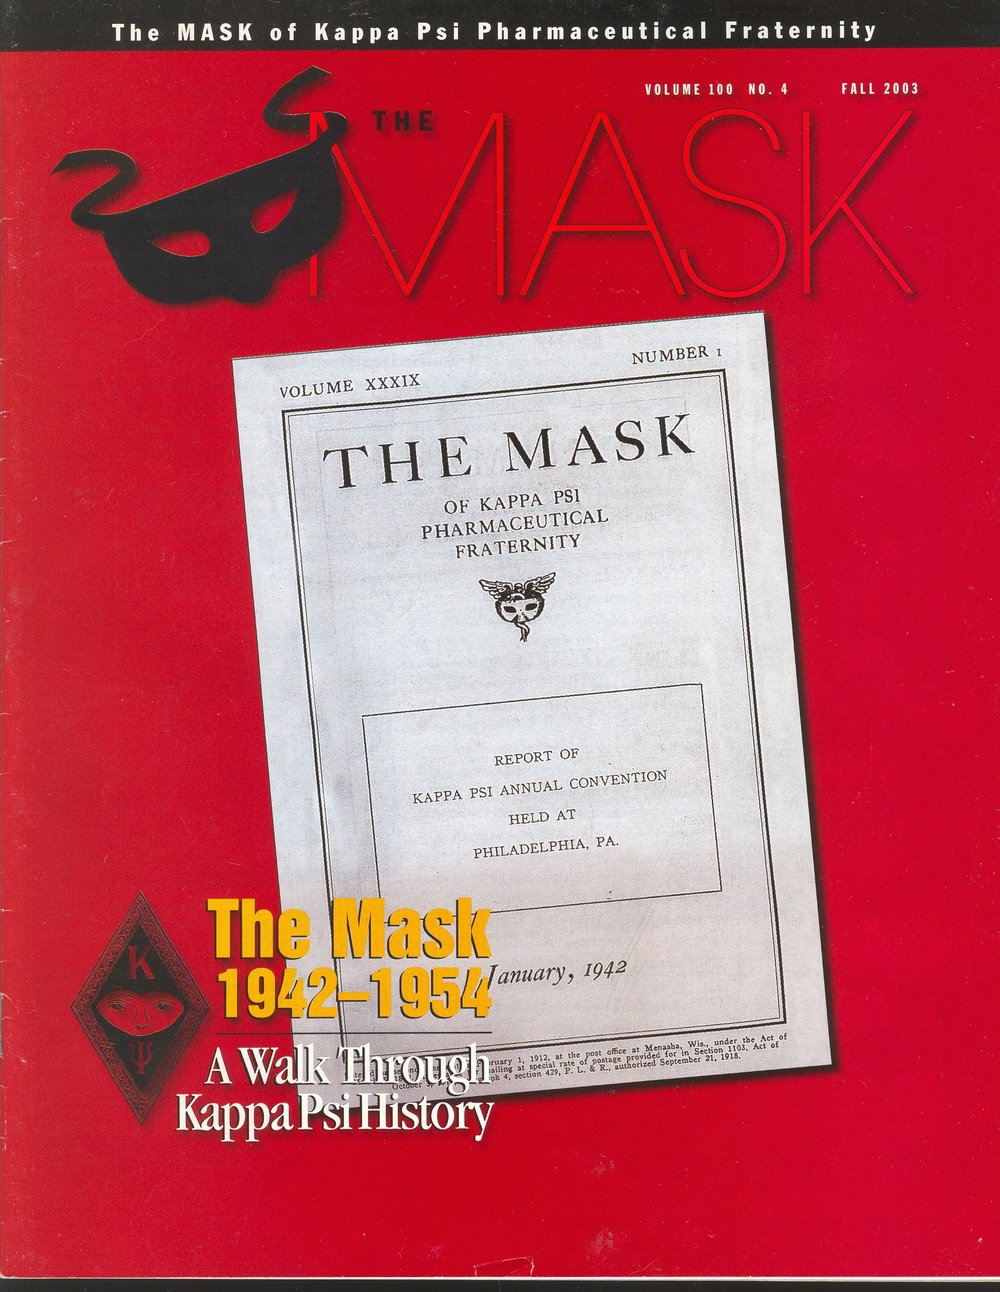 mask_cover_100-4_2003_fall.jpg